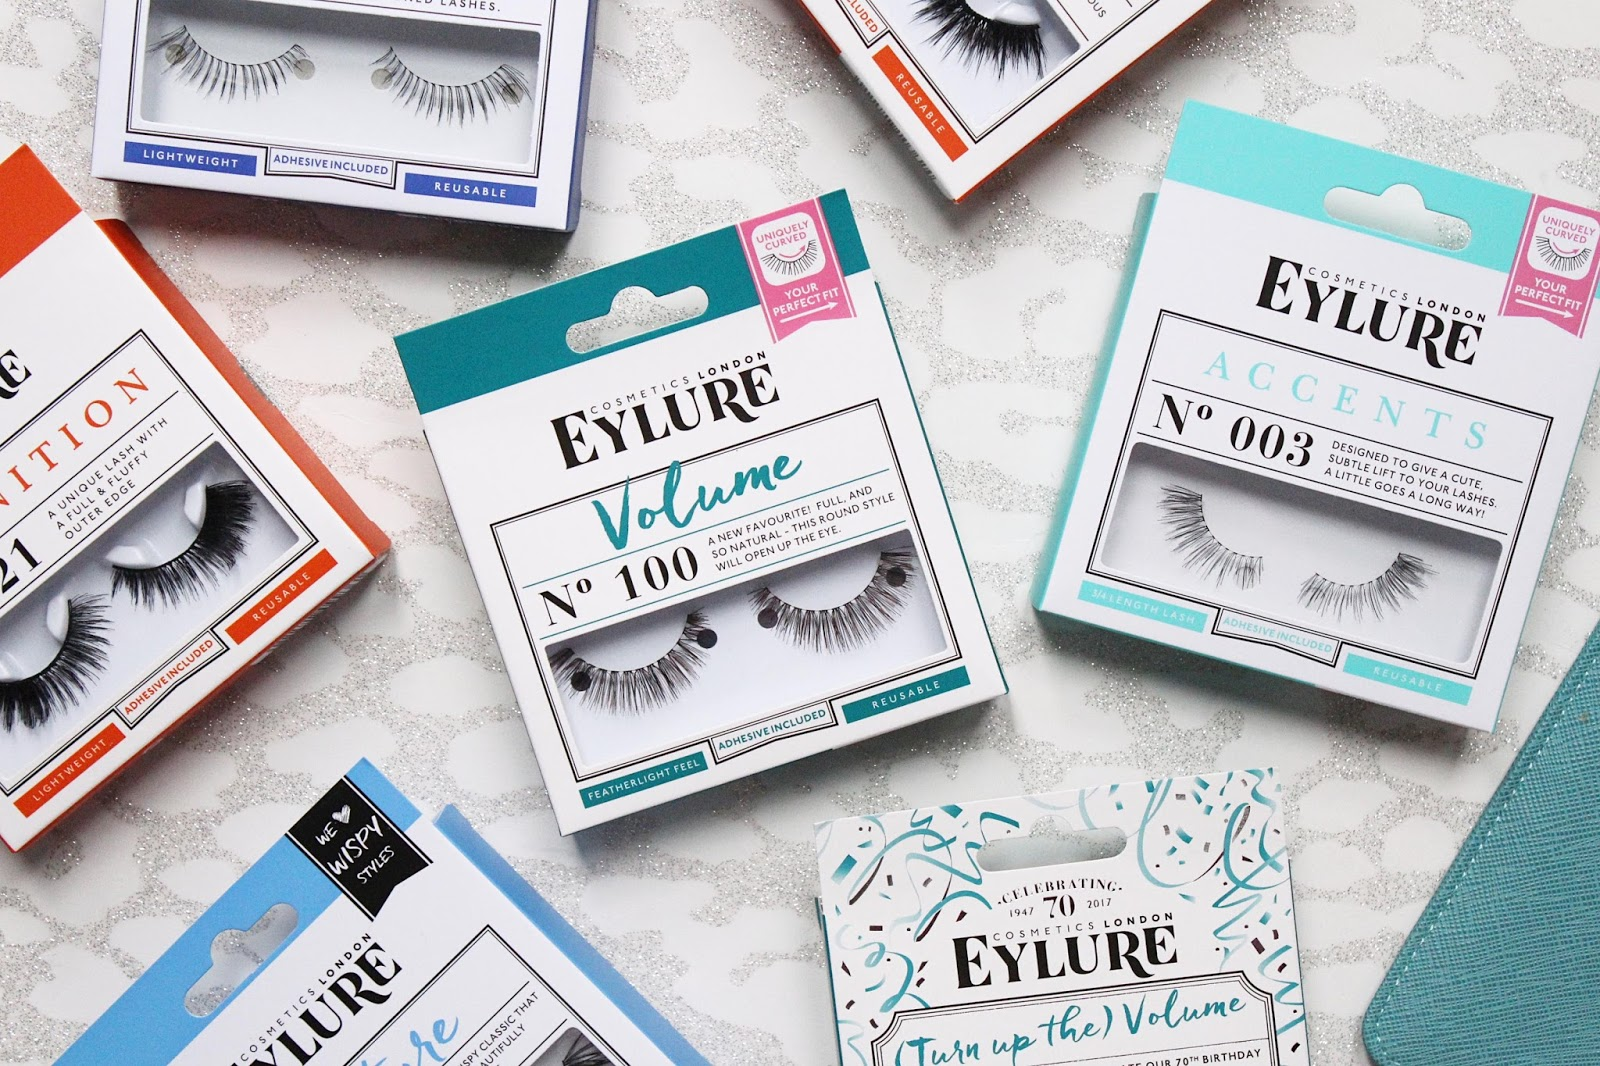 70 Years of Eylure